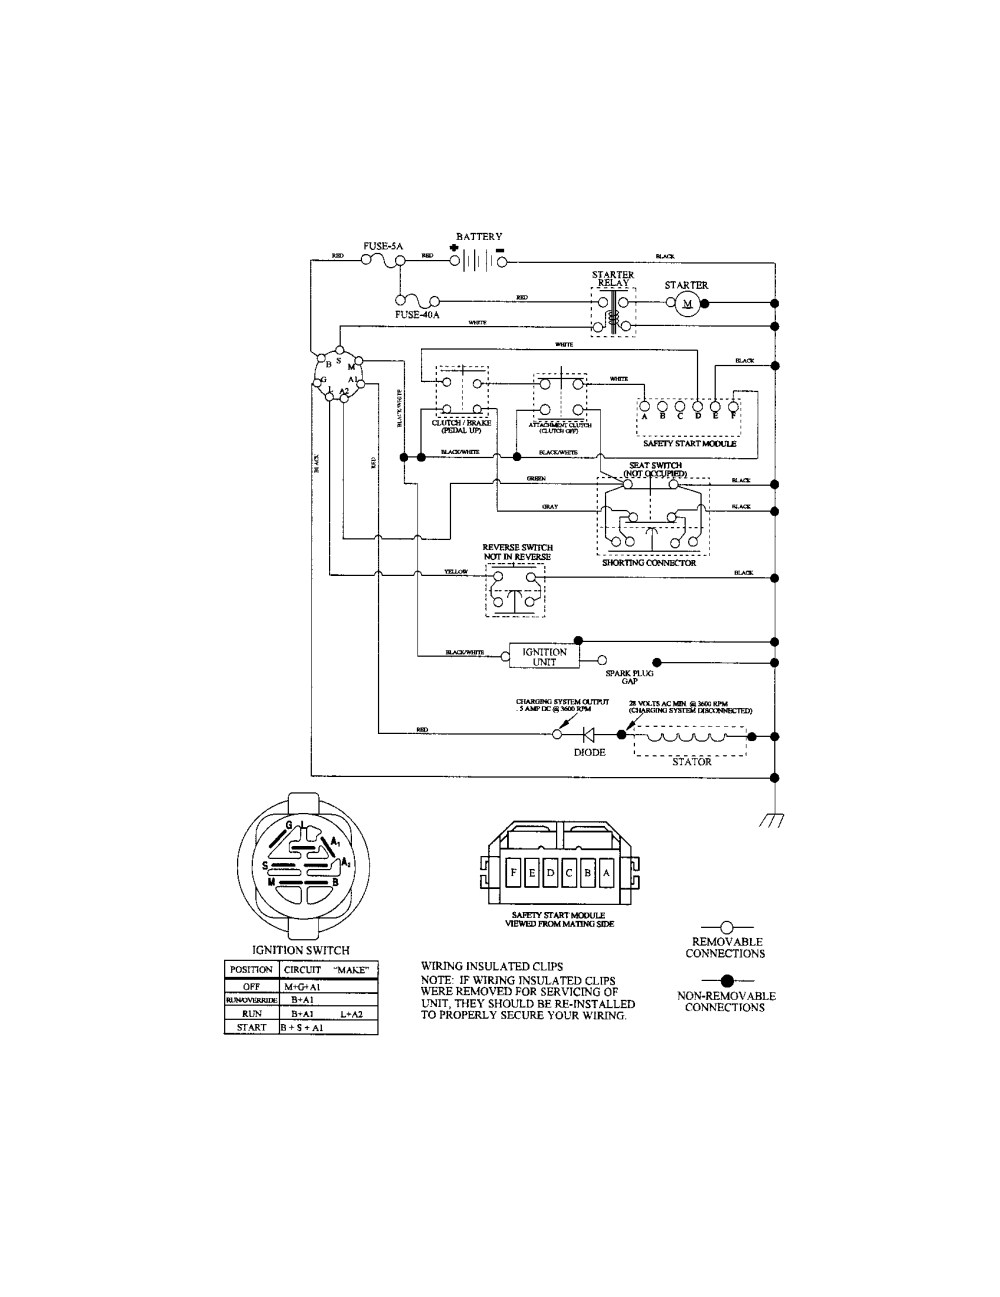 medium resolution of craftsman lawn mower model 917 wiring diagram